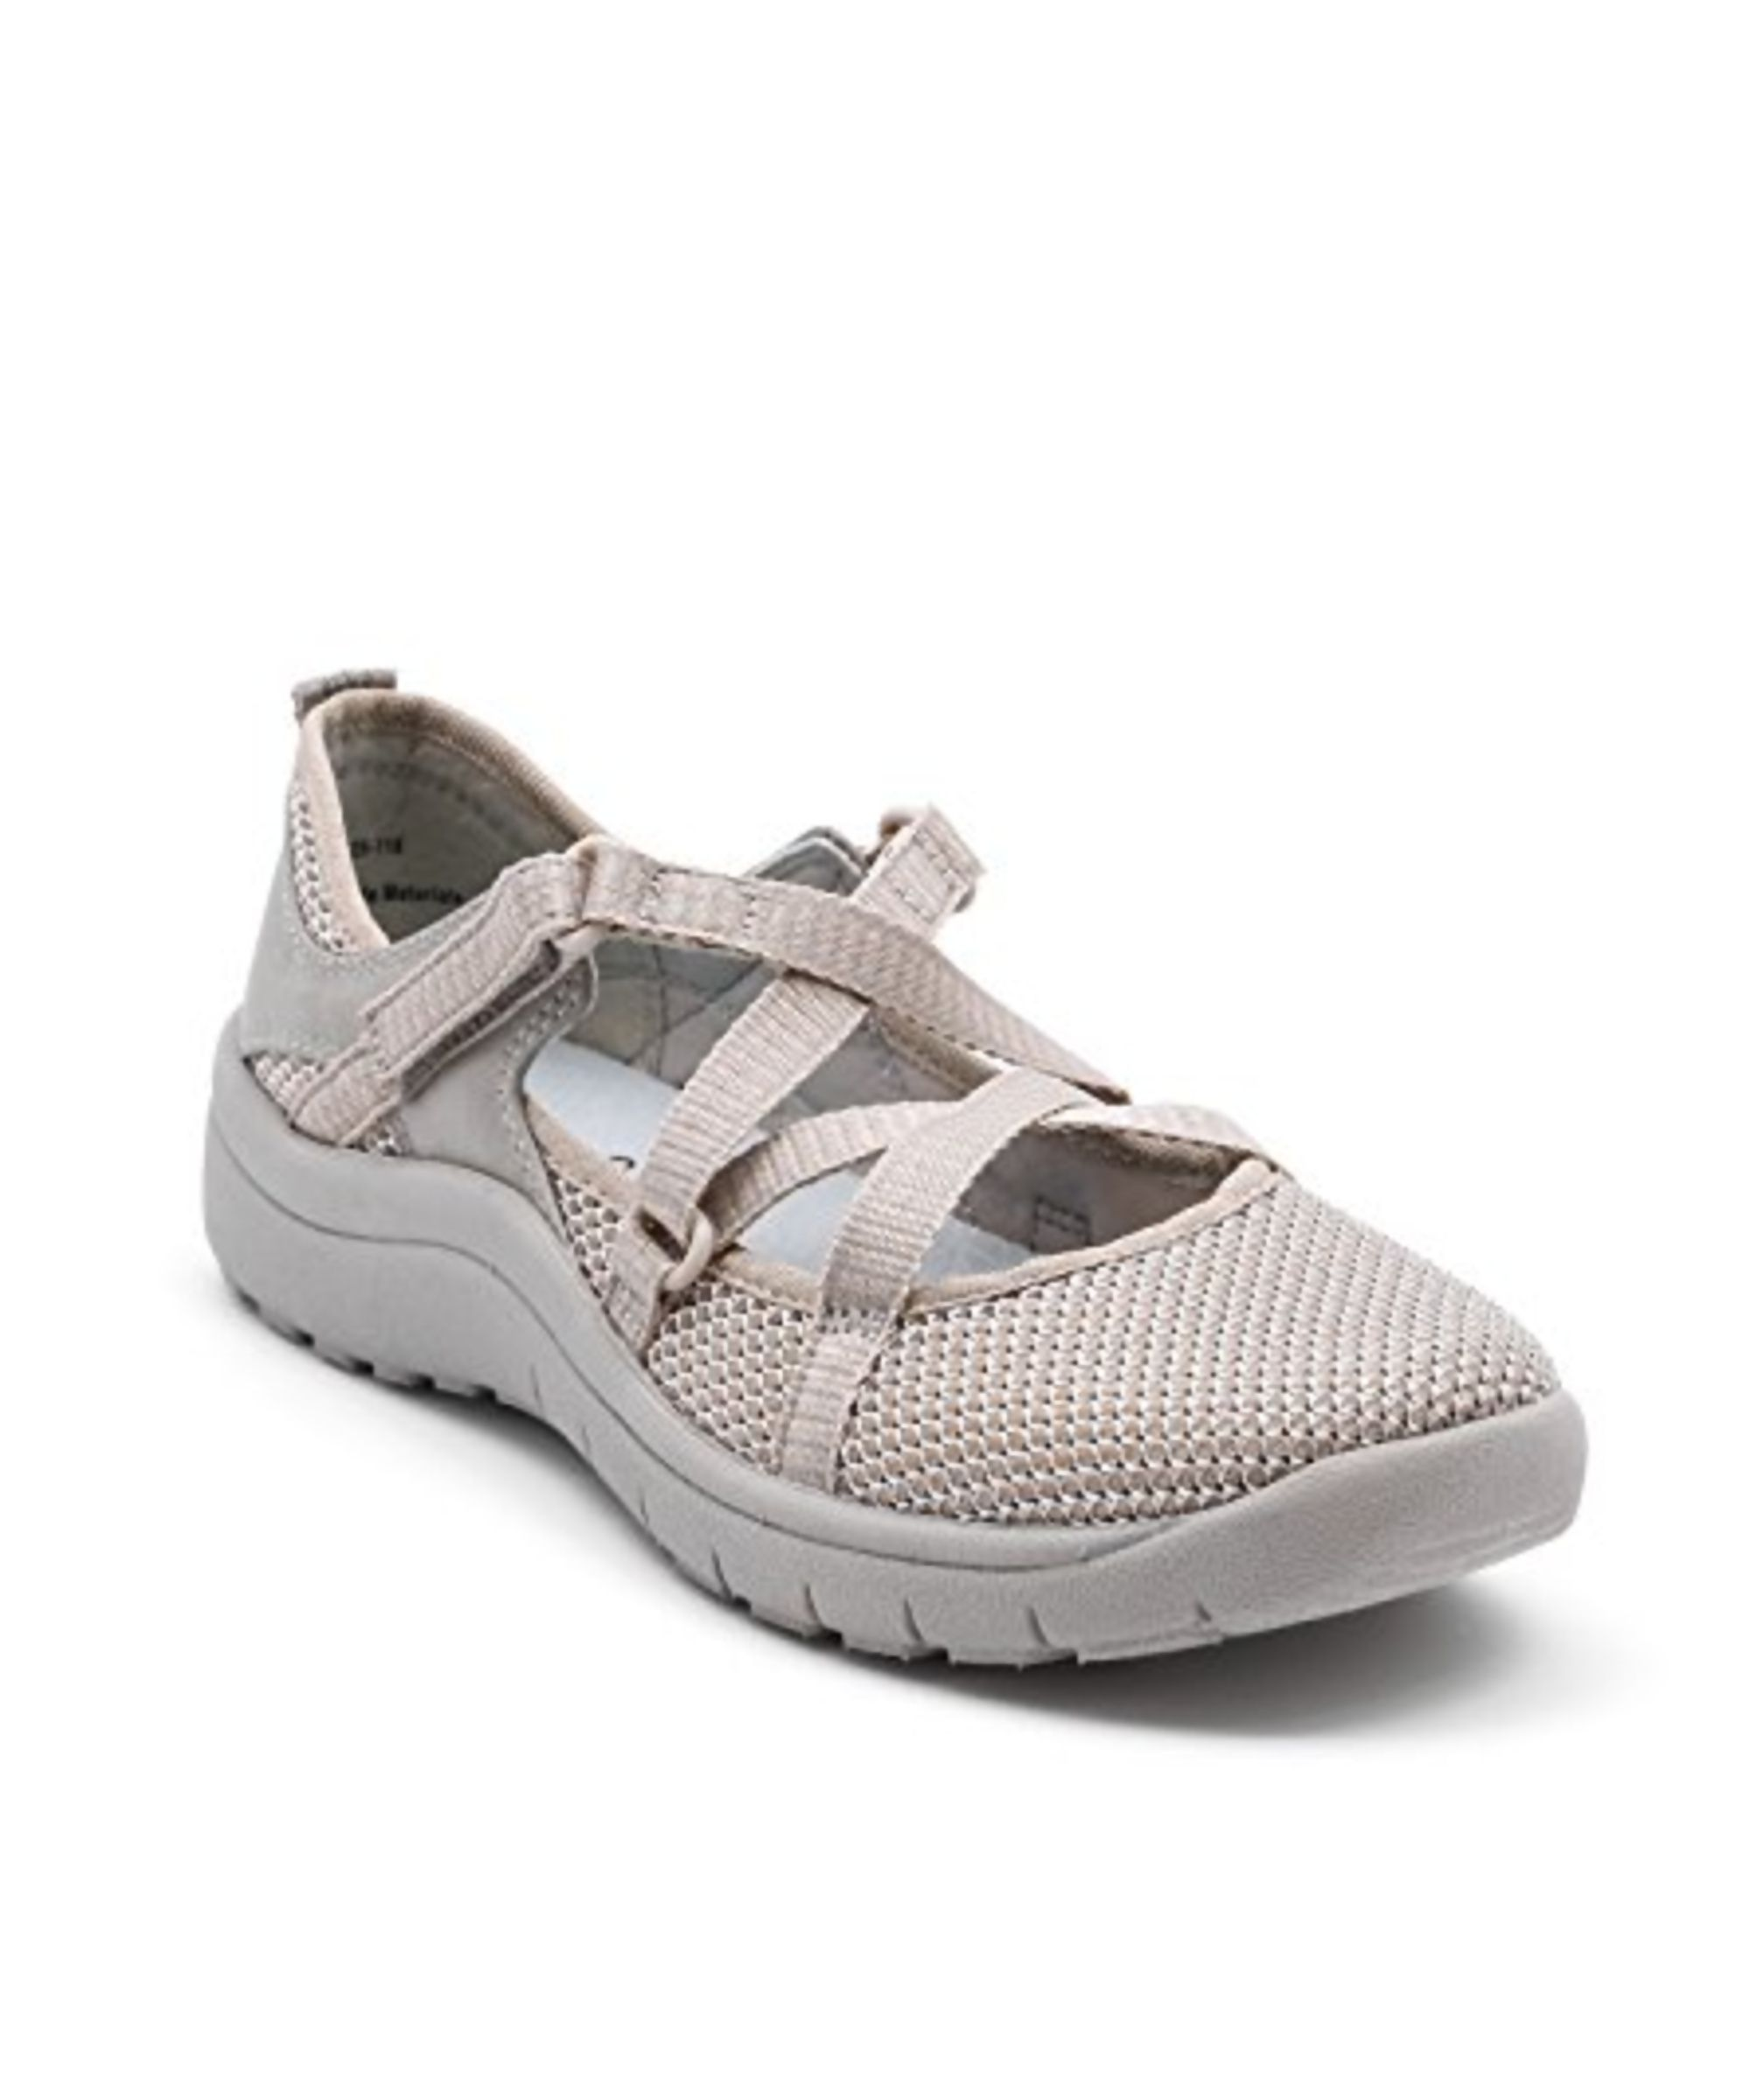 BARE TRAPS | Bare Traps Womens Poppy Low Top Fashion Sneakers #Shoes # Sneakers #